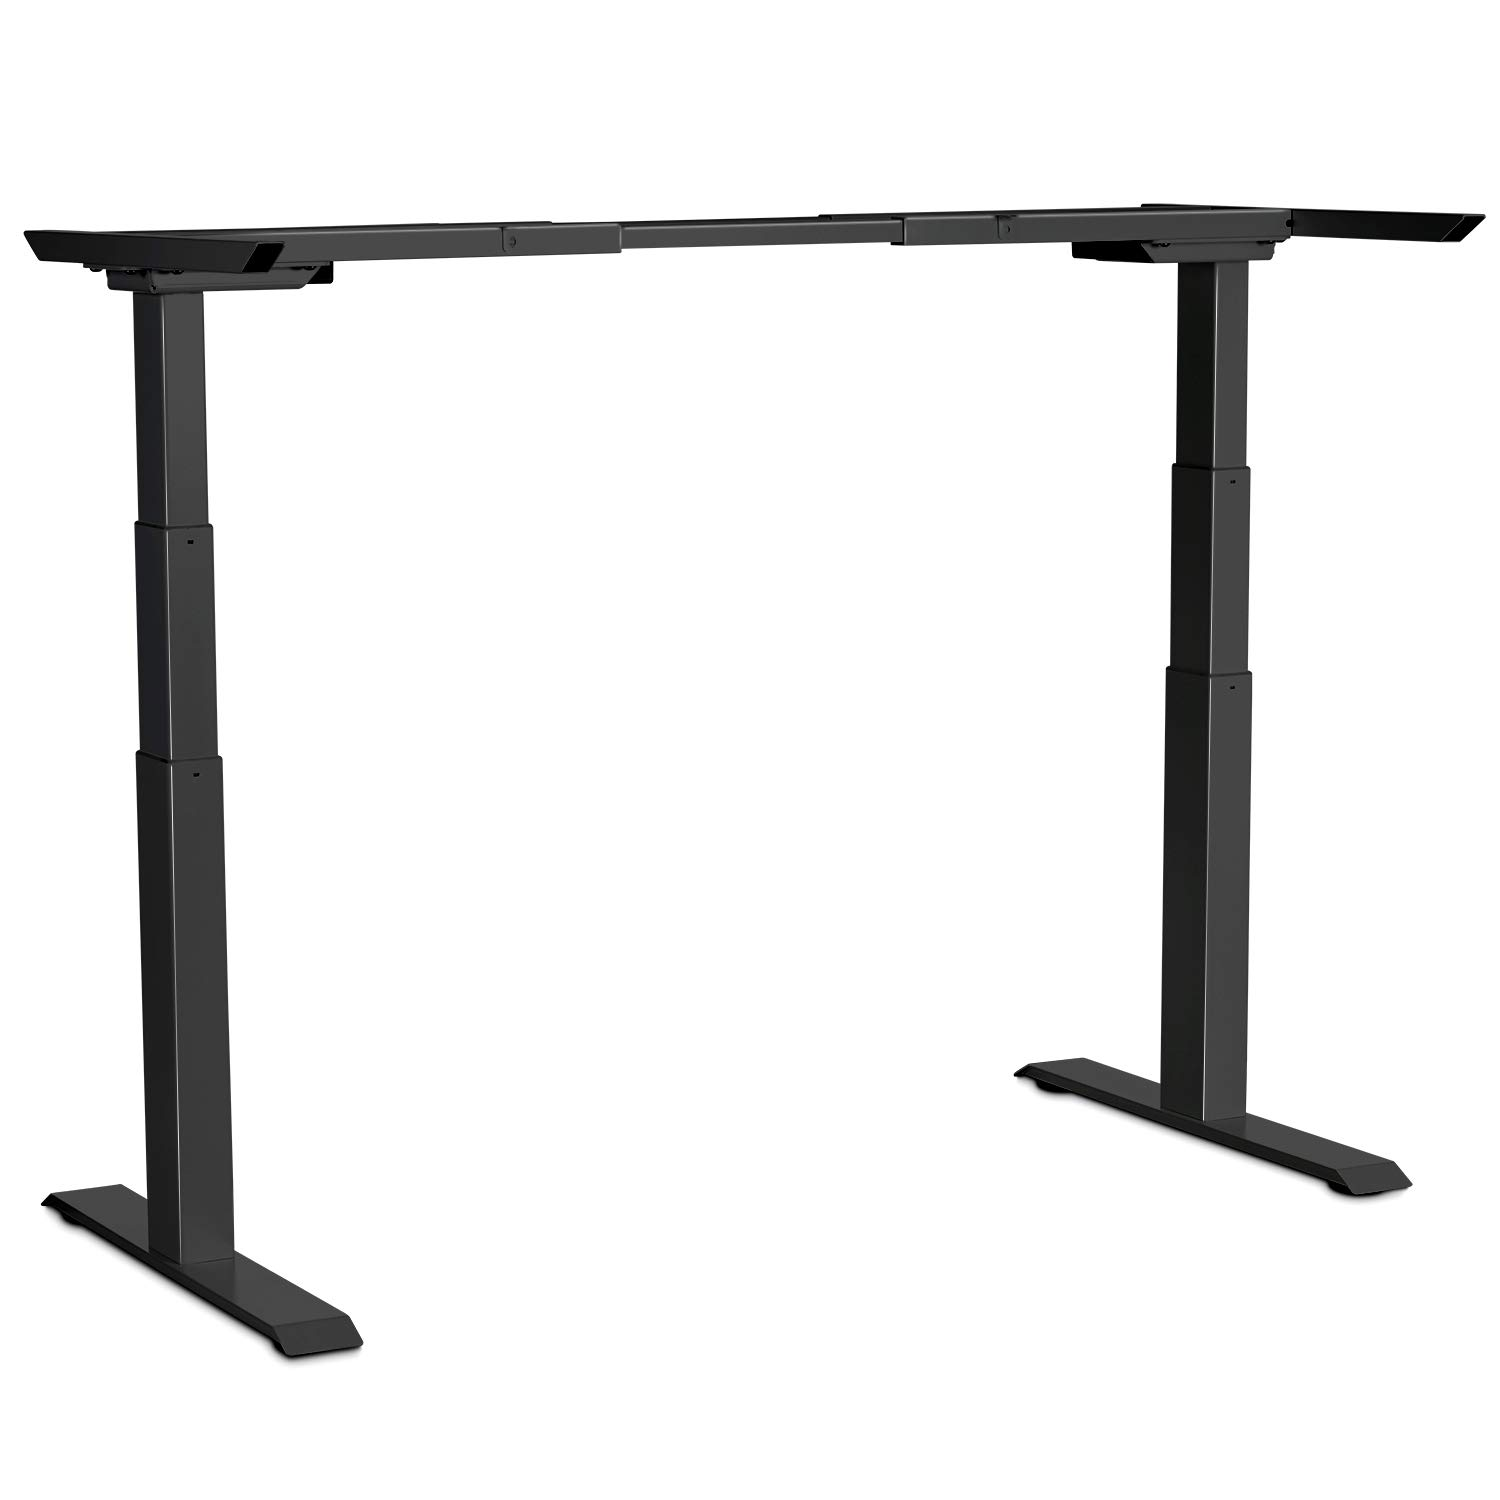 Electric Stand up Desk Frame - EleTab Dual Motor Height Adjustable Ergonomic Sit Stand Desk Base Workstation with 3 Stage up Lifting Legs (Black Frame only) by EleTab